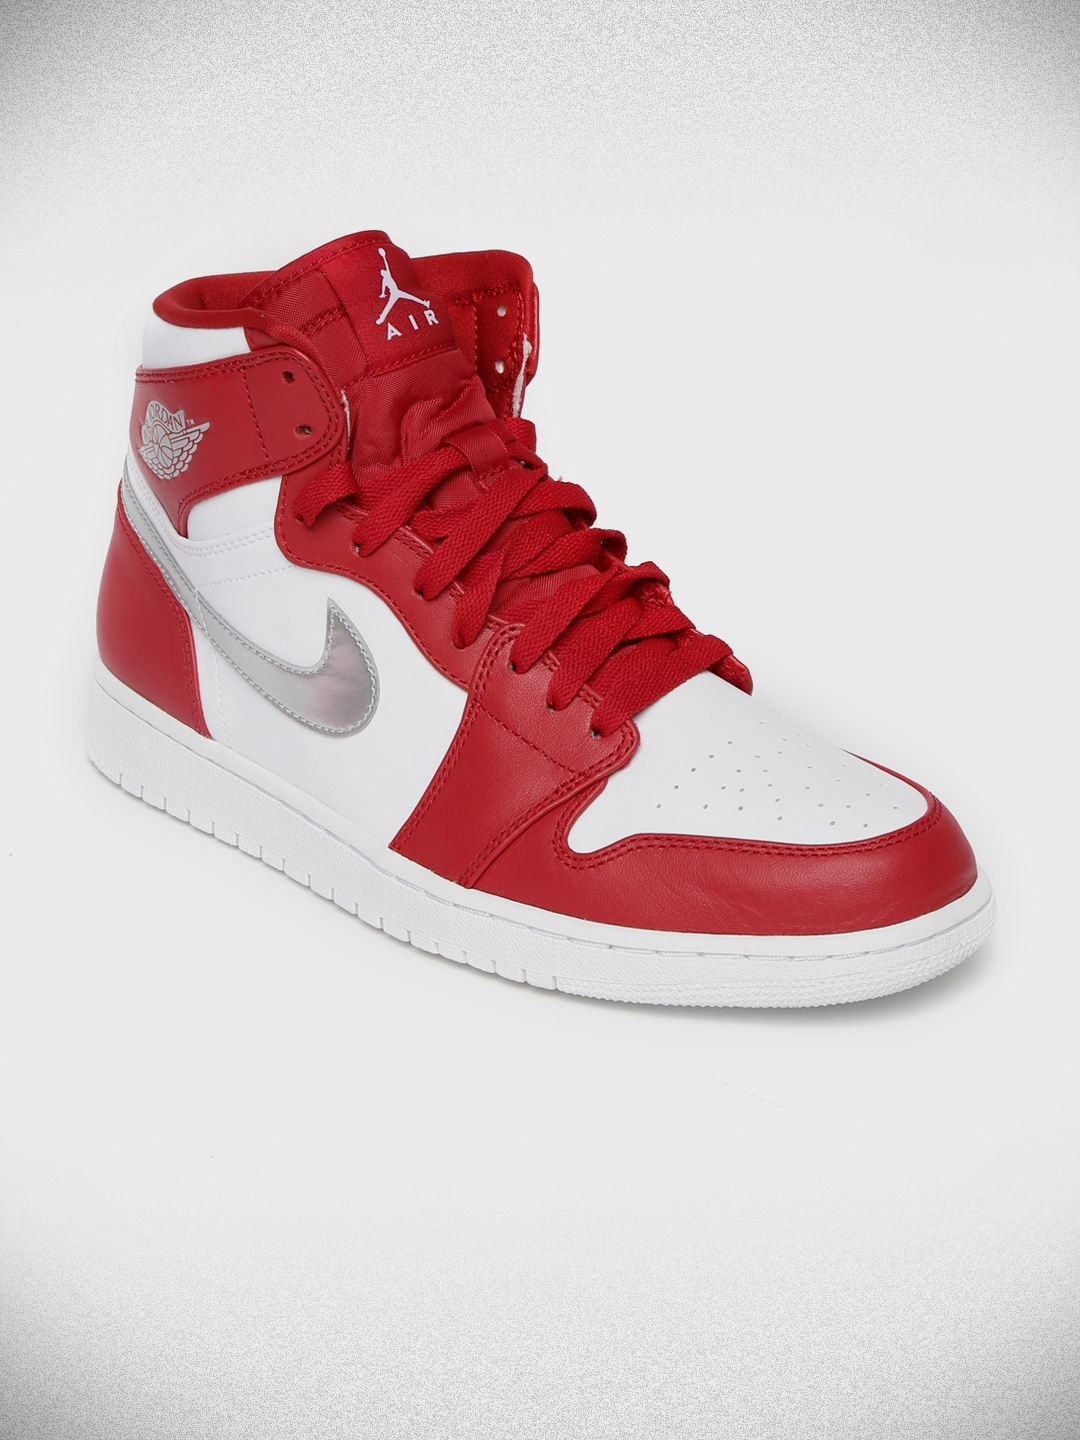 442da0a1e81 nike red sneakers for men Girls  Jordans and Jordan products are available  for ages ranging from infant through grade school.